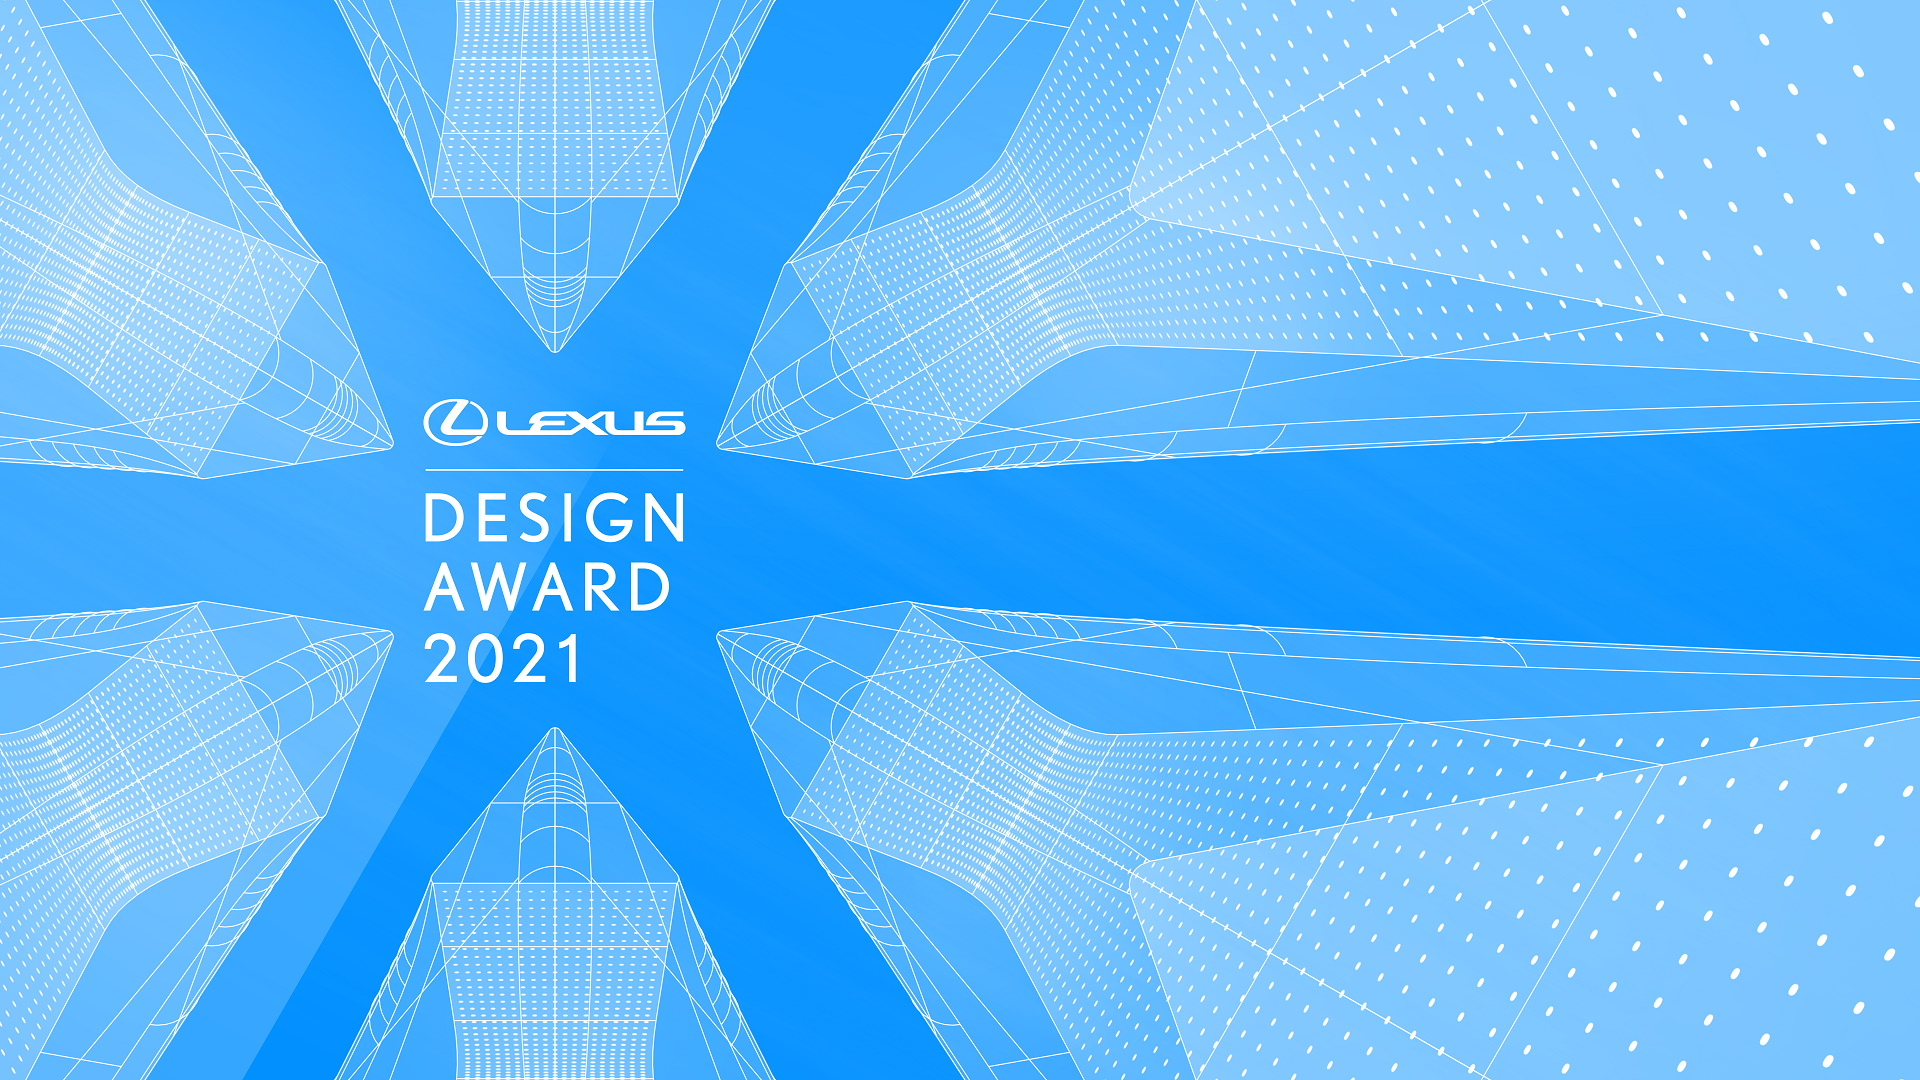 Lexus design award 2021 Hero